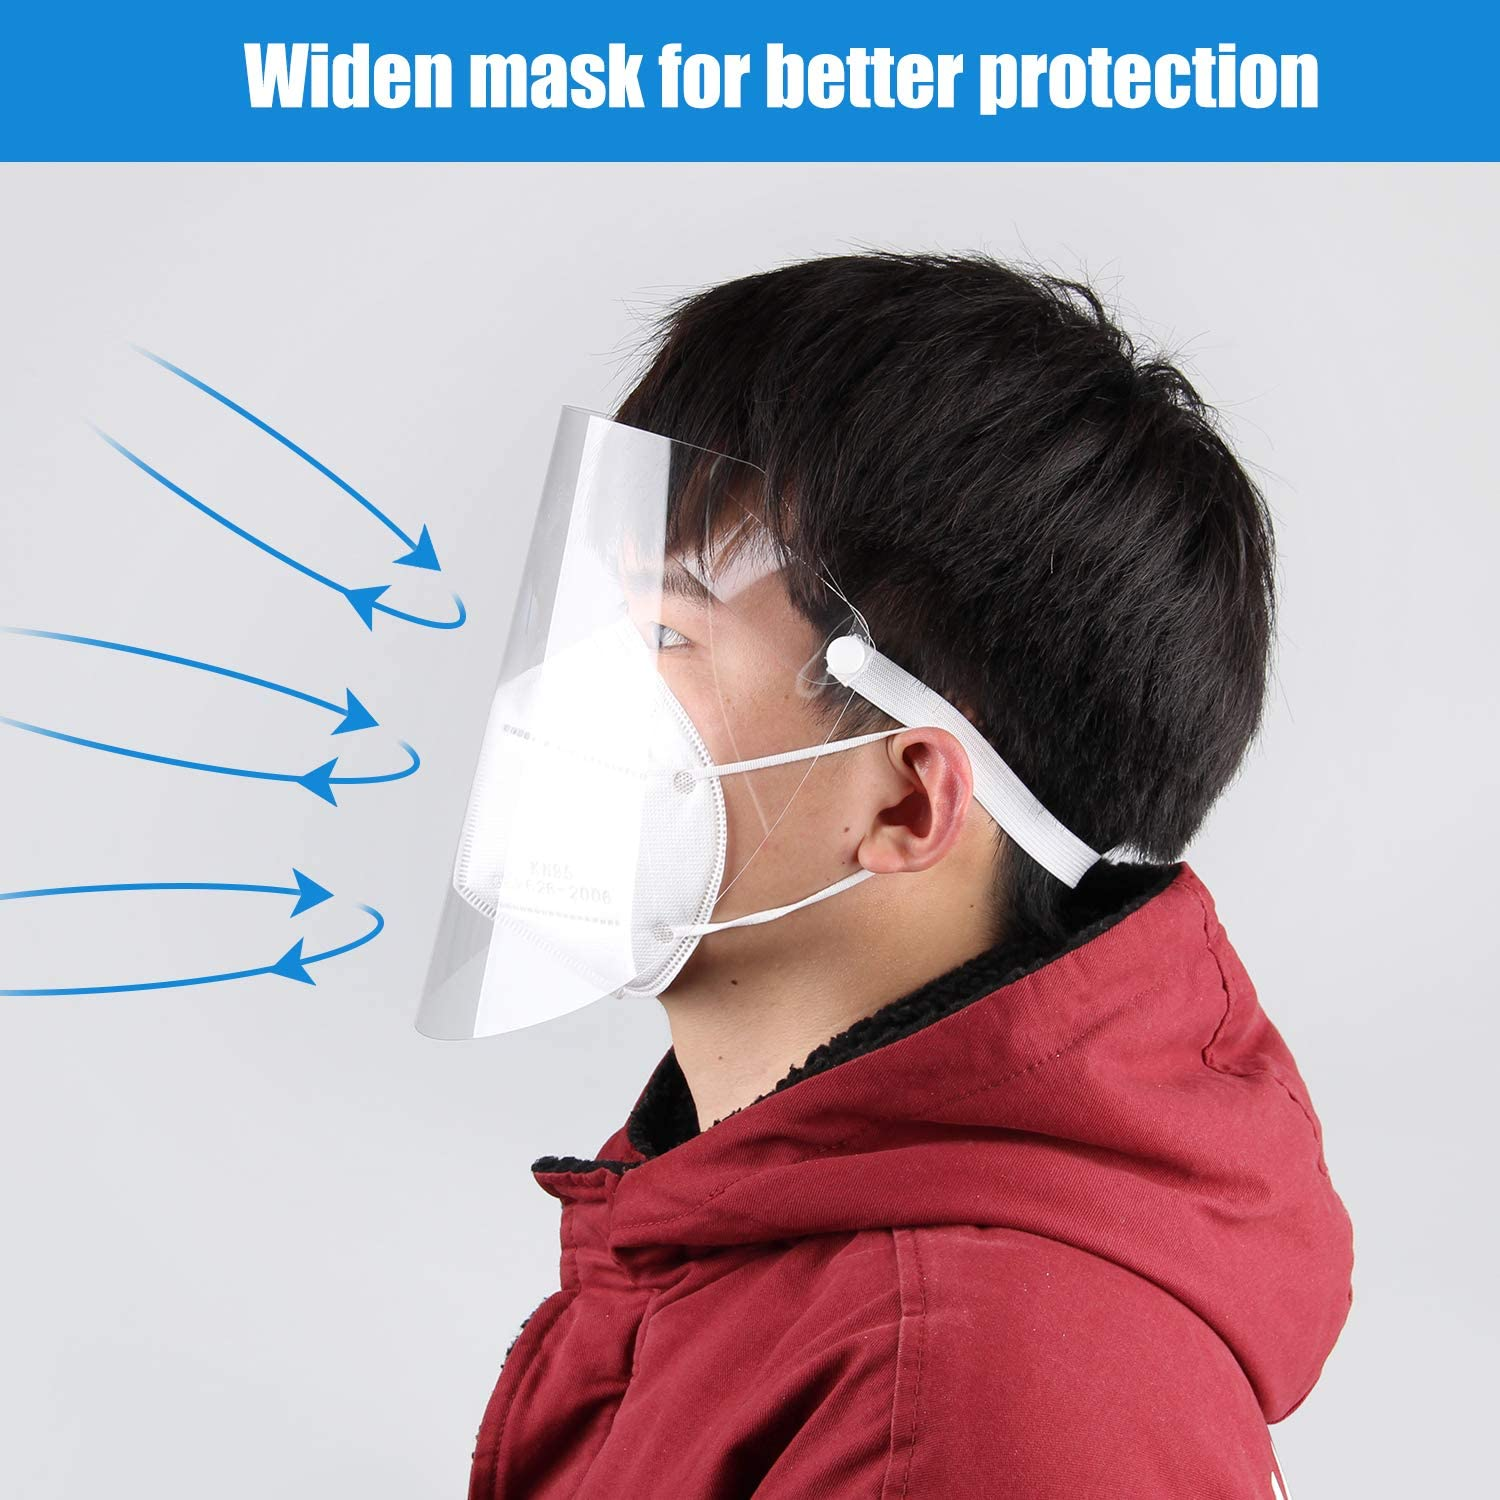 Protective Face Shield 5 Pcs Reusable Safety Full Face Shields Plastic Clear Protection Visor Anti-Spitting Film Super Light Facial Cover für Women Männer & Kids